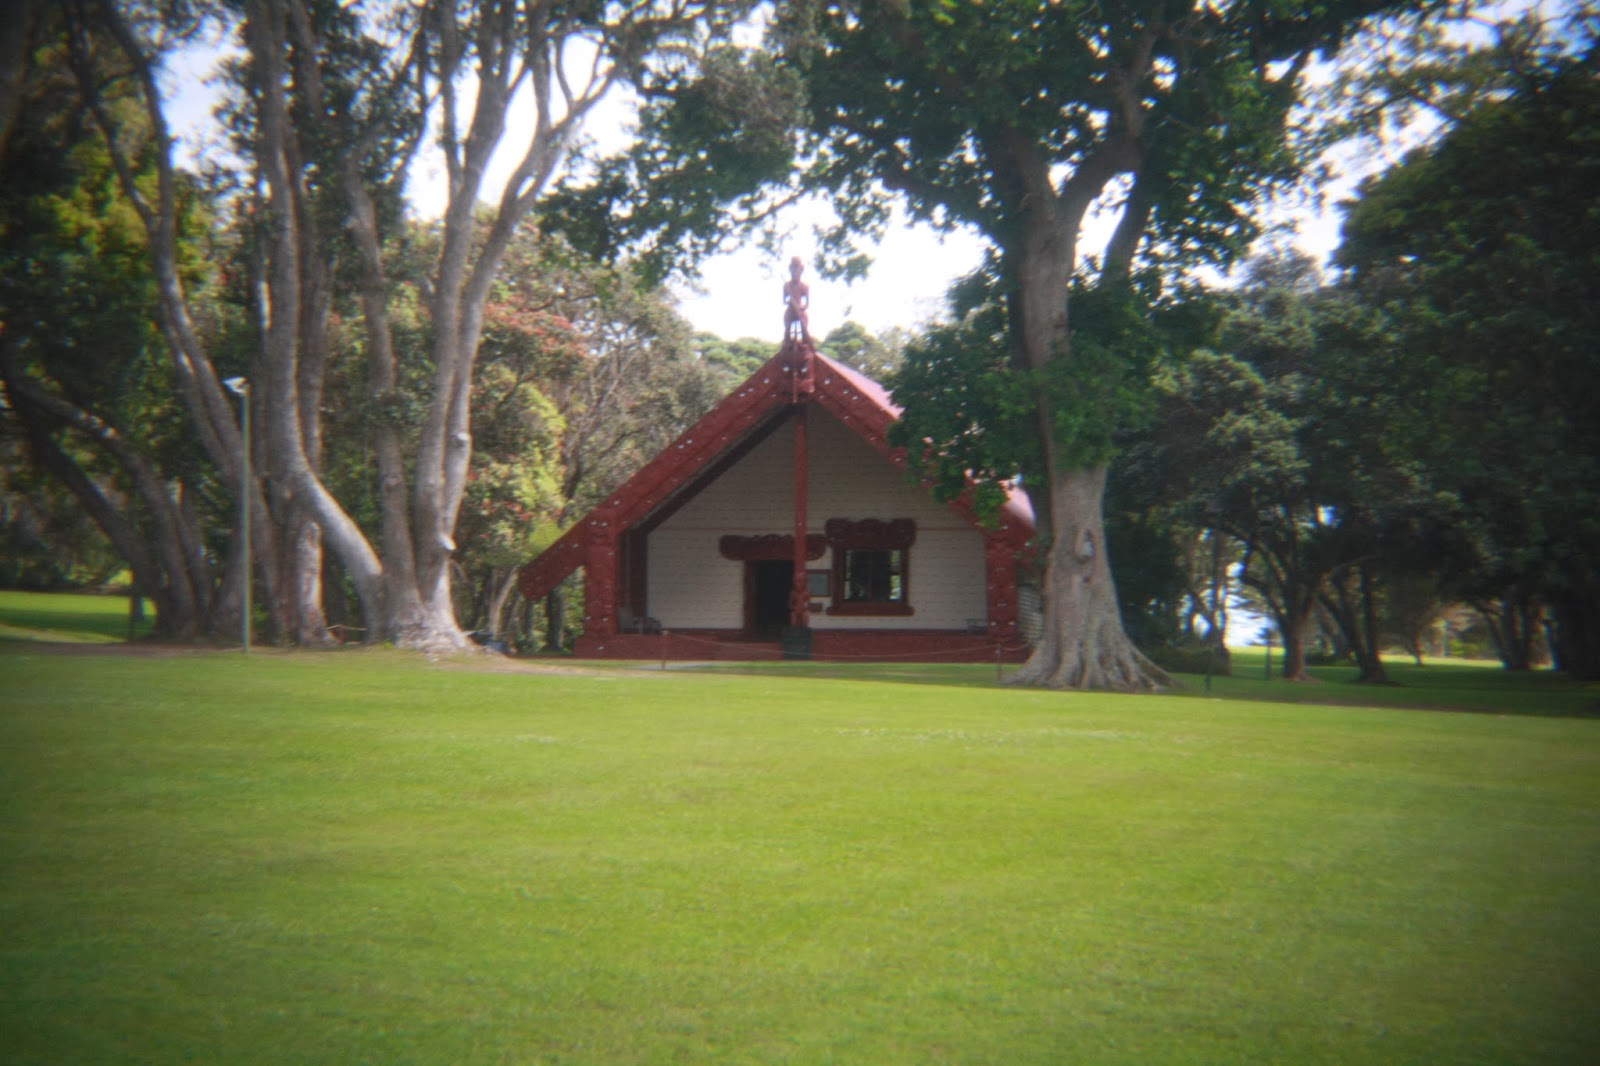 The meeting house at Waitangi.